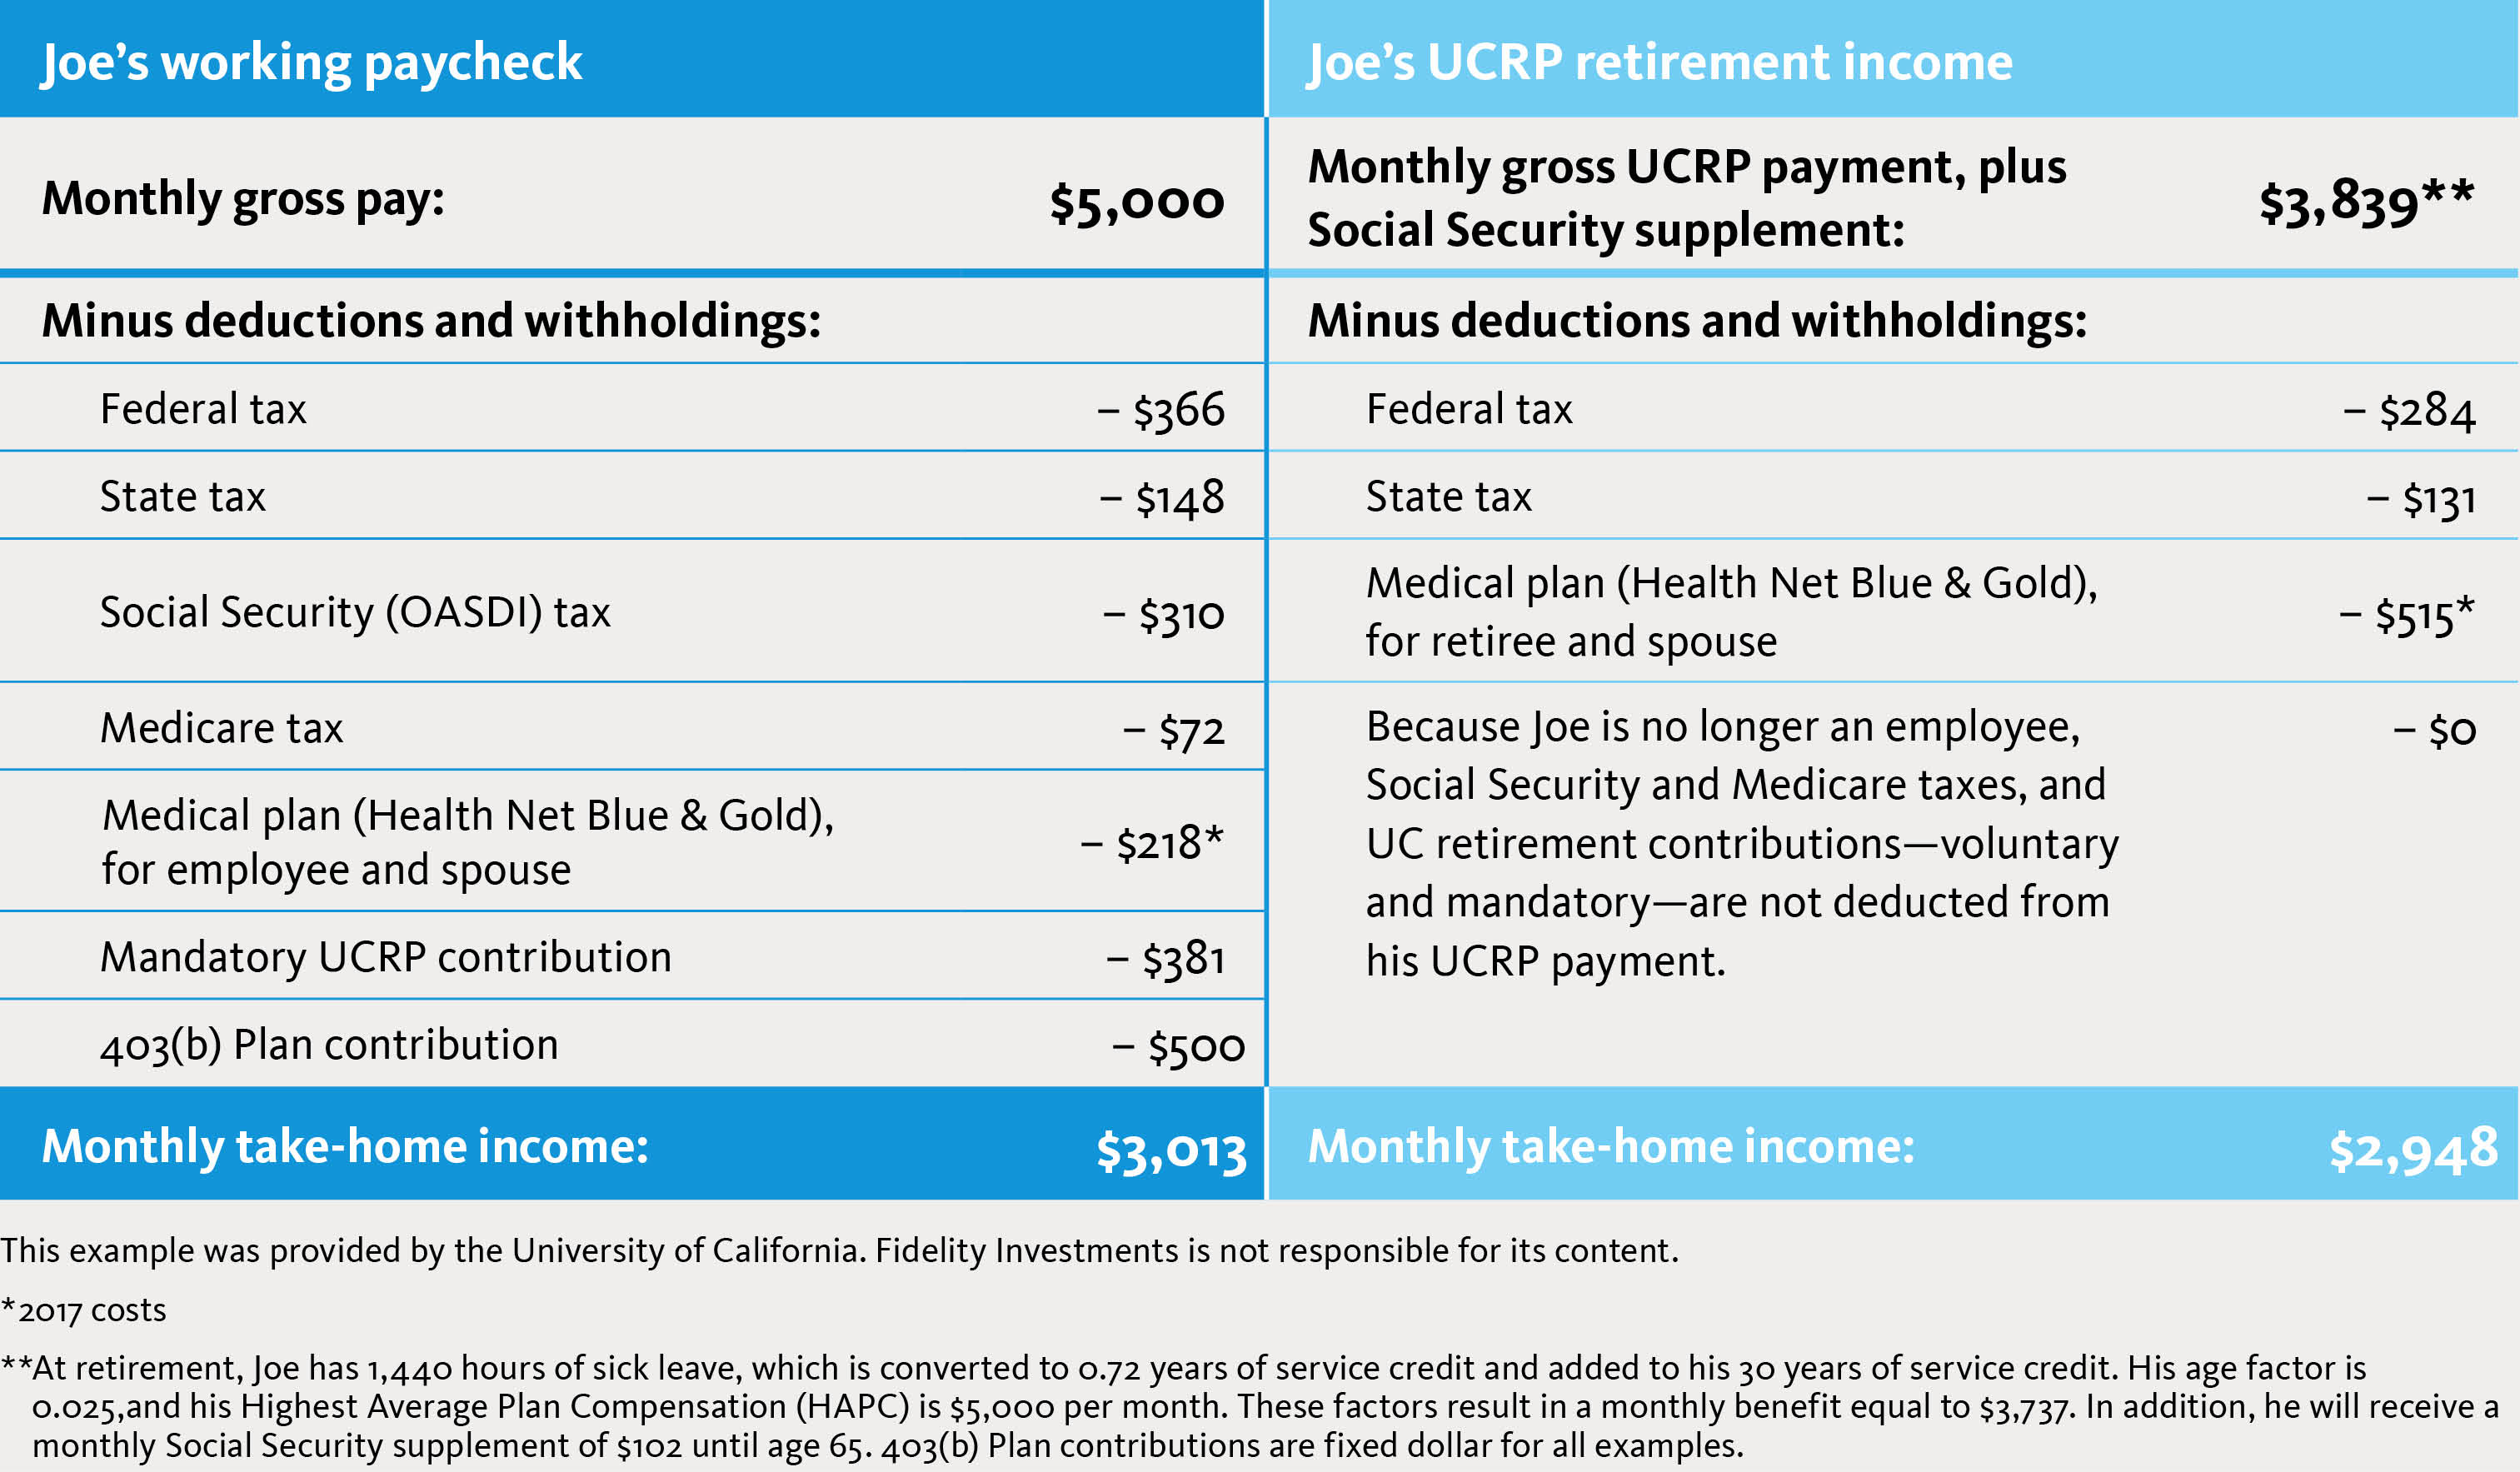 University of California - Your UC retirement income <br